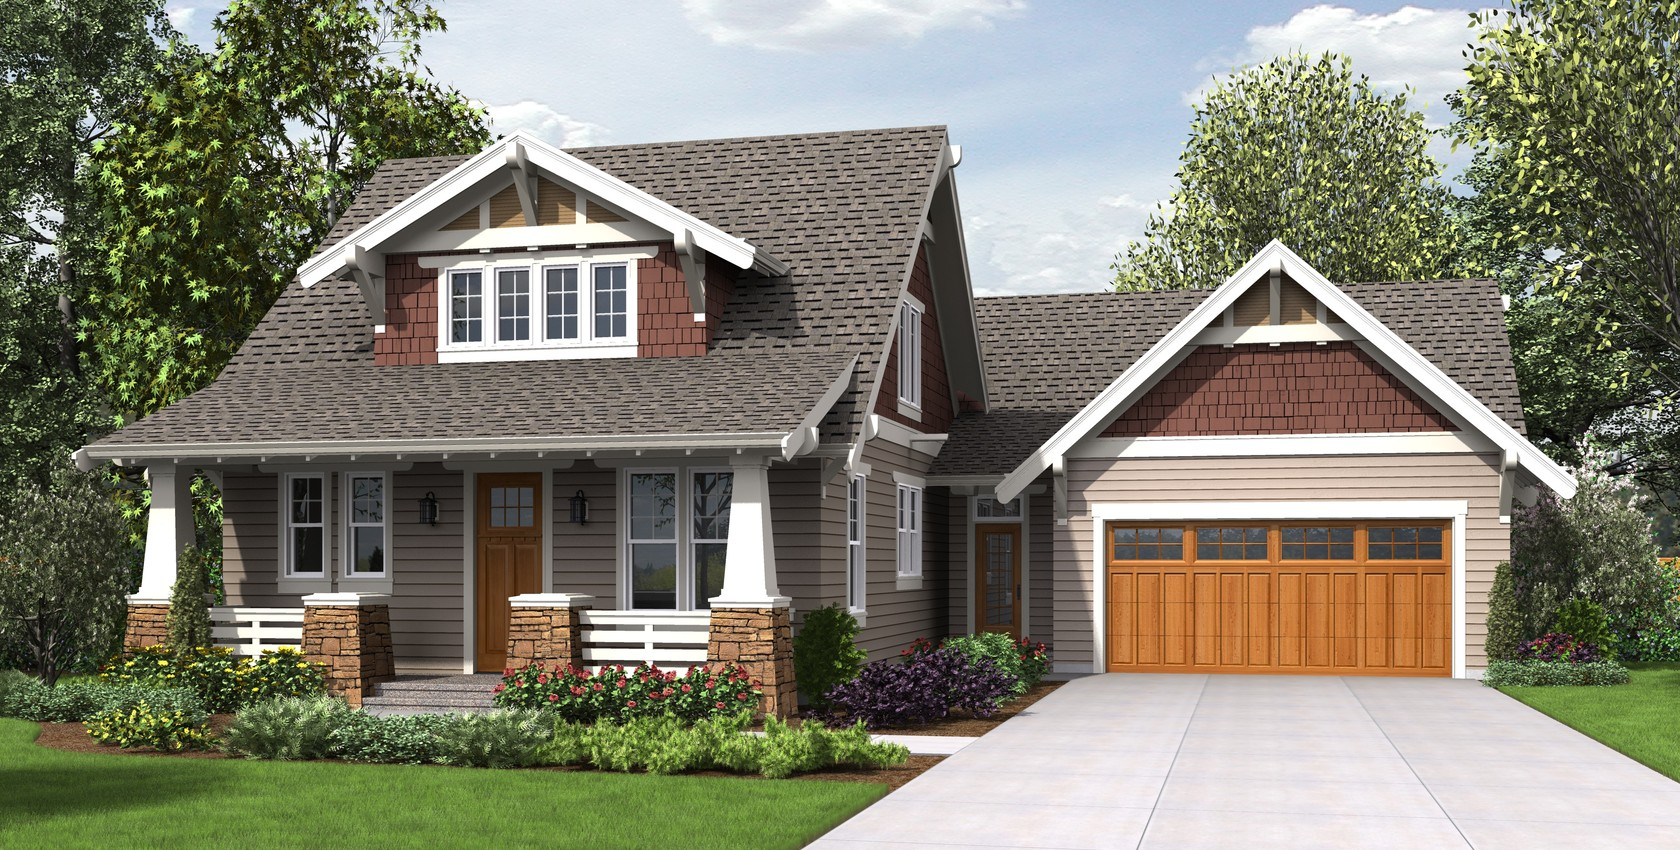 Image for Davidson-Traditional Craftsman Home with Modern Design-8353